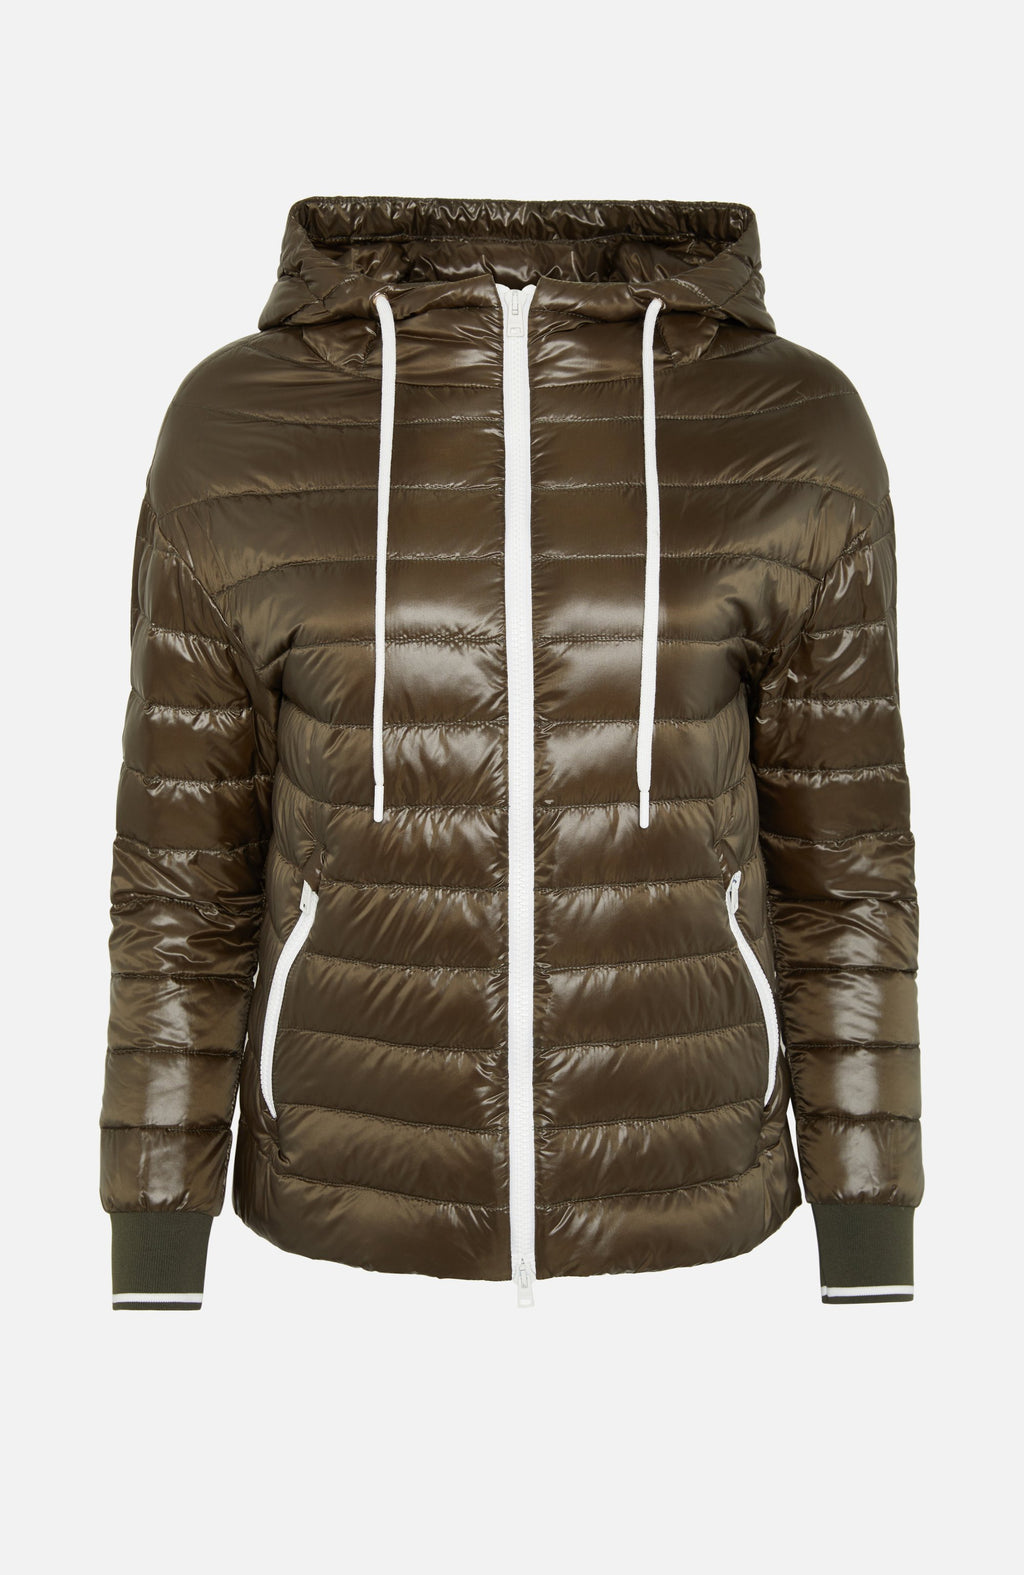 Herno Khaki Hooded Lightweight Puffer Jacket